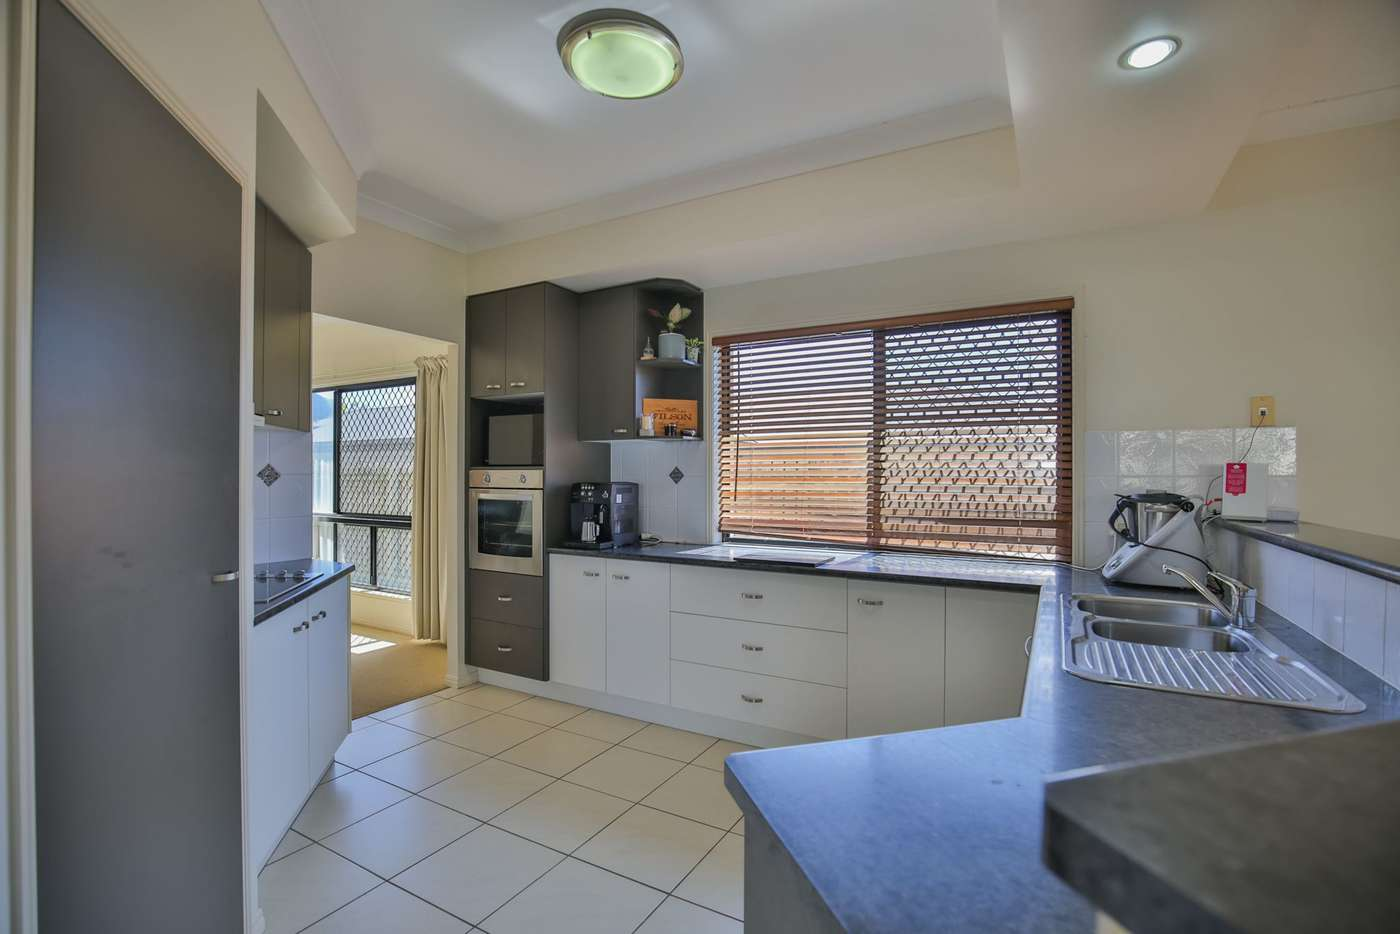 Main view of Homely house listing, 18 McCallum Close, Coral Cove QLD 4670